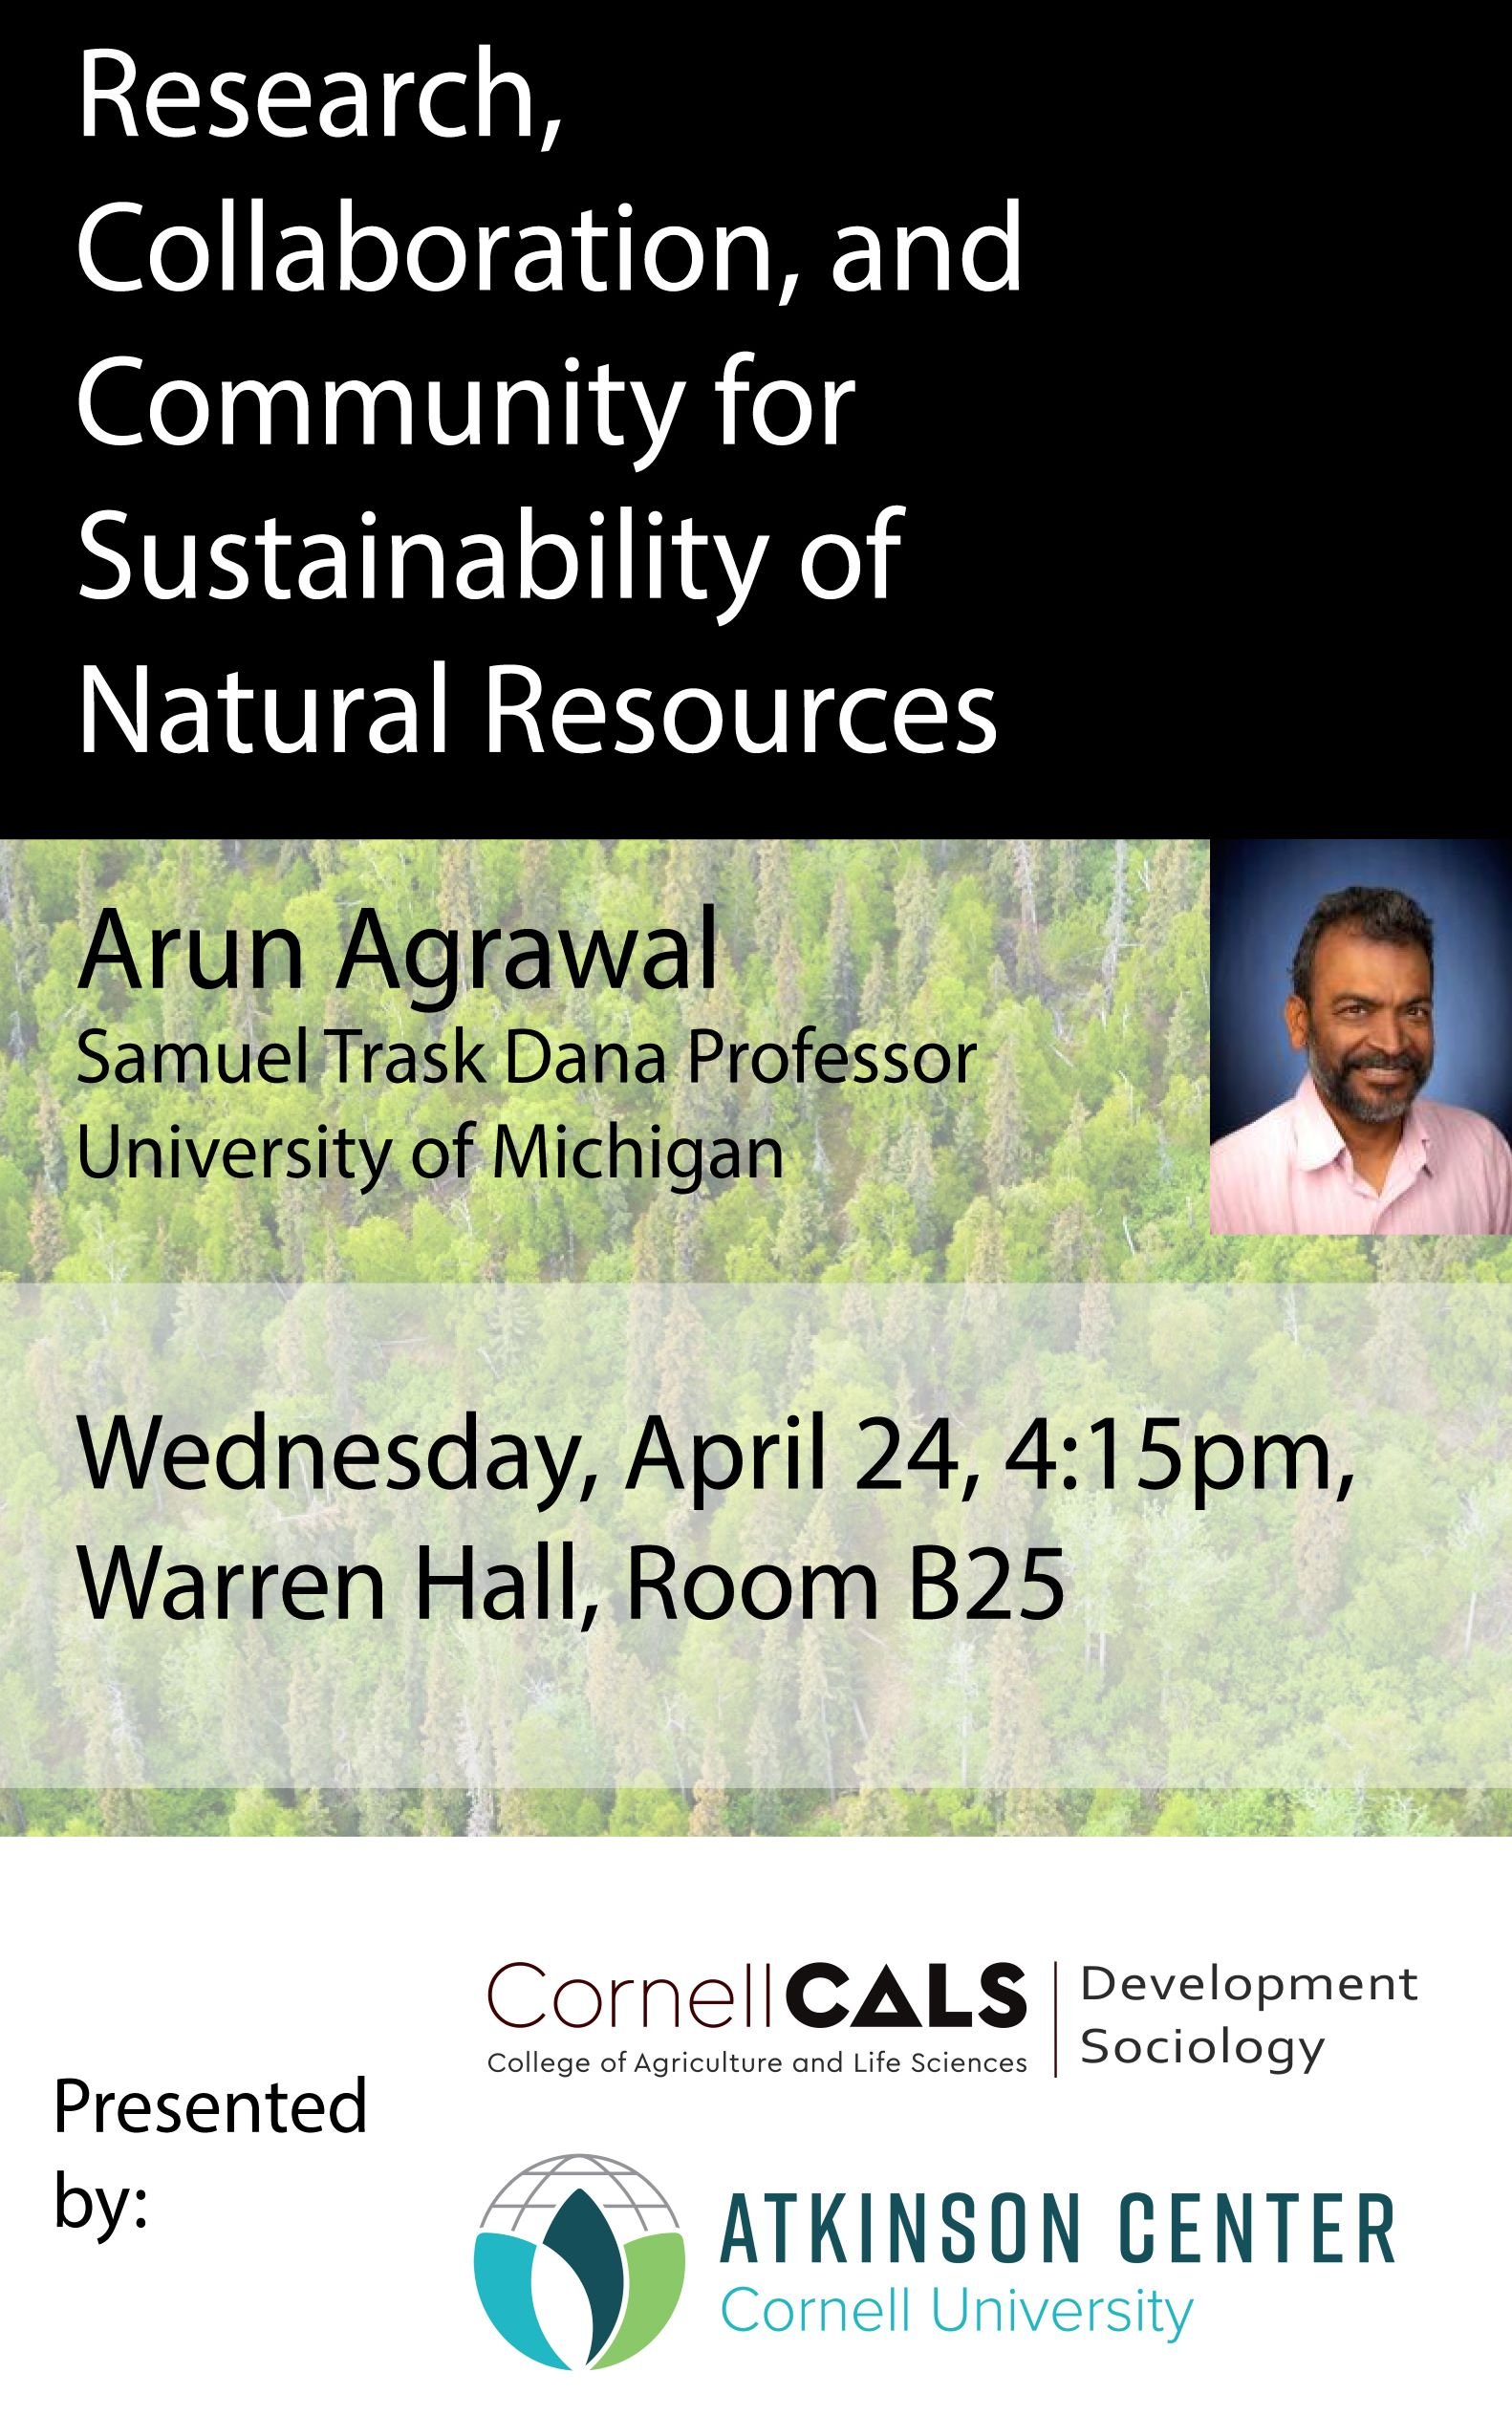 Research, Collaboration, and Community for Sustainability of Natural Resources - Arun Agrawal, University of Michigan